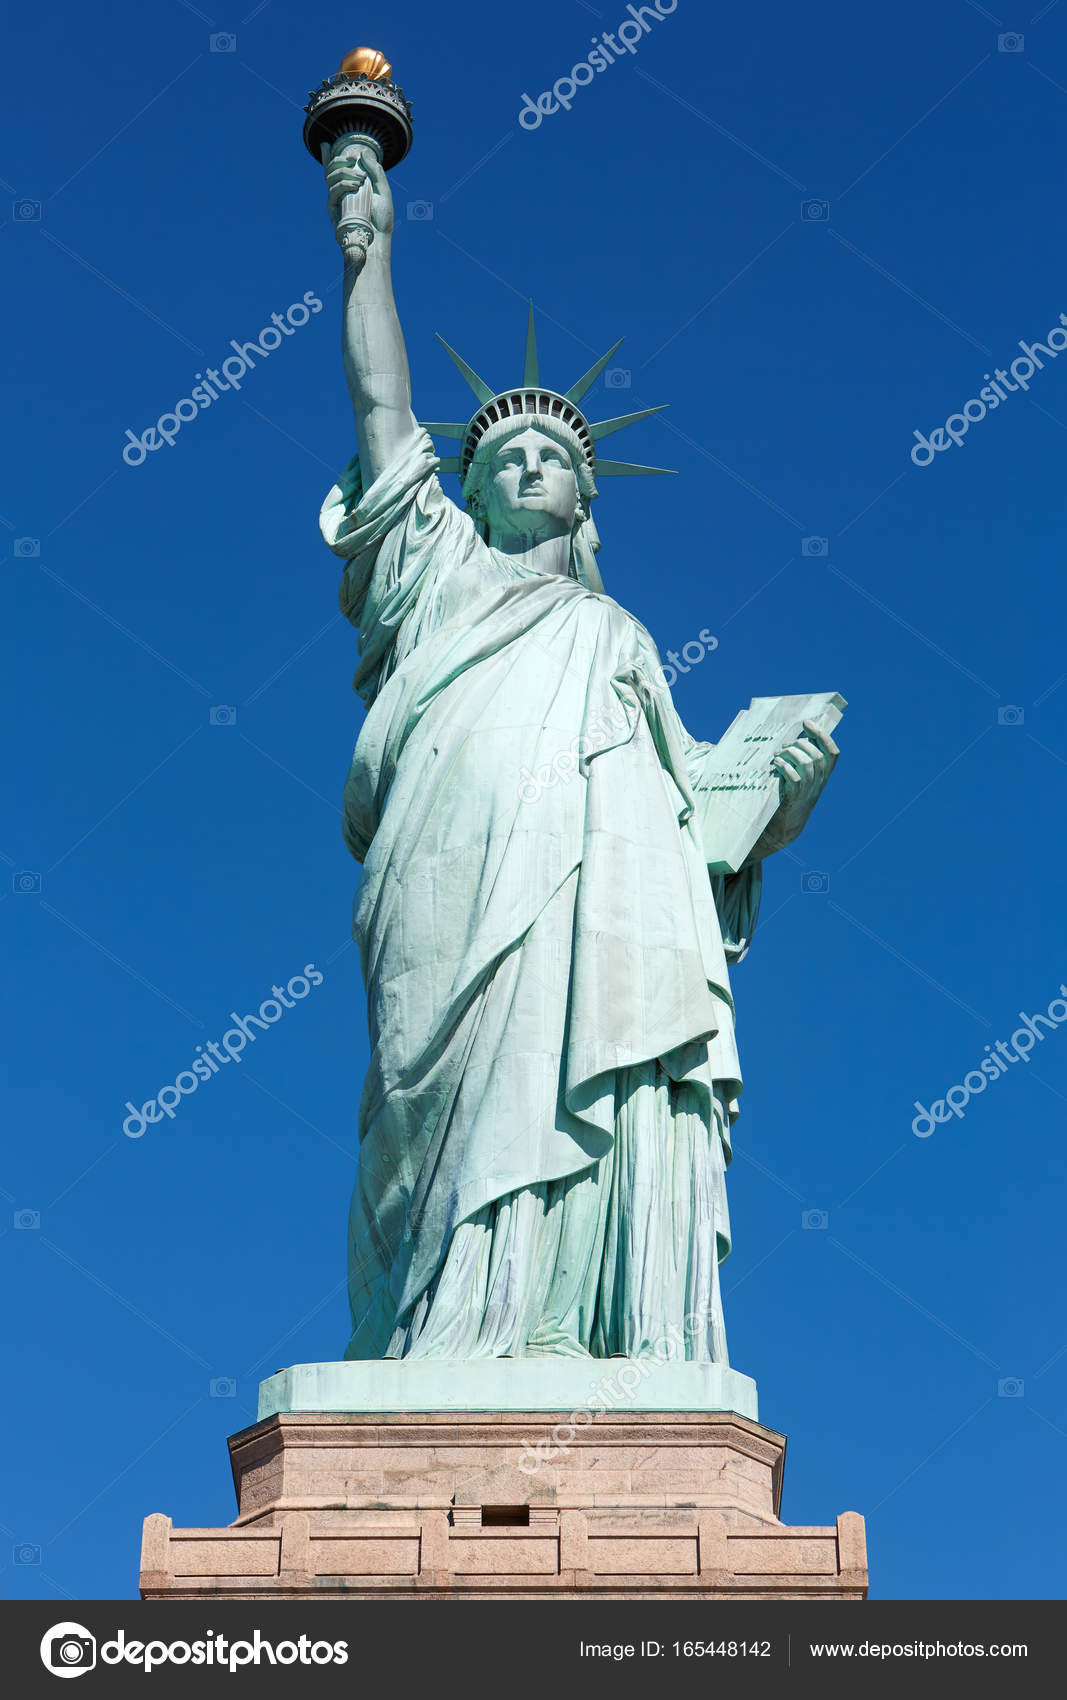 day stock of york statue a photo skies and pedestal clouds sunny island new her wispy yor overlooking with blue on liberty lady hpbkca tickets harbor